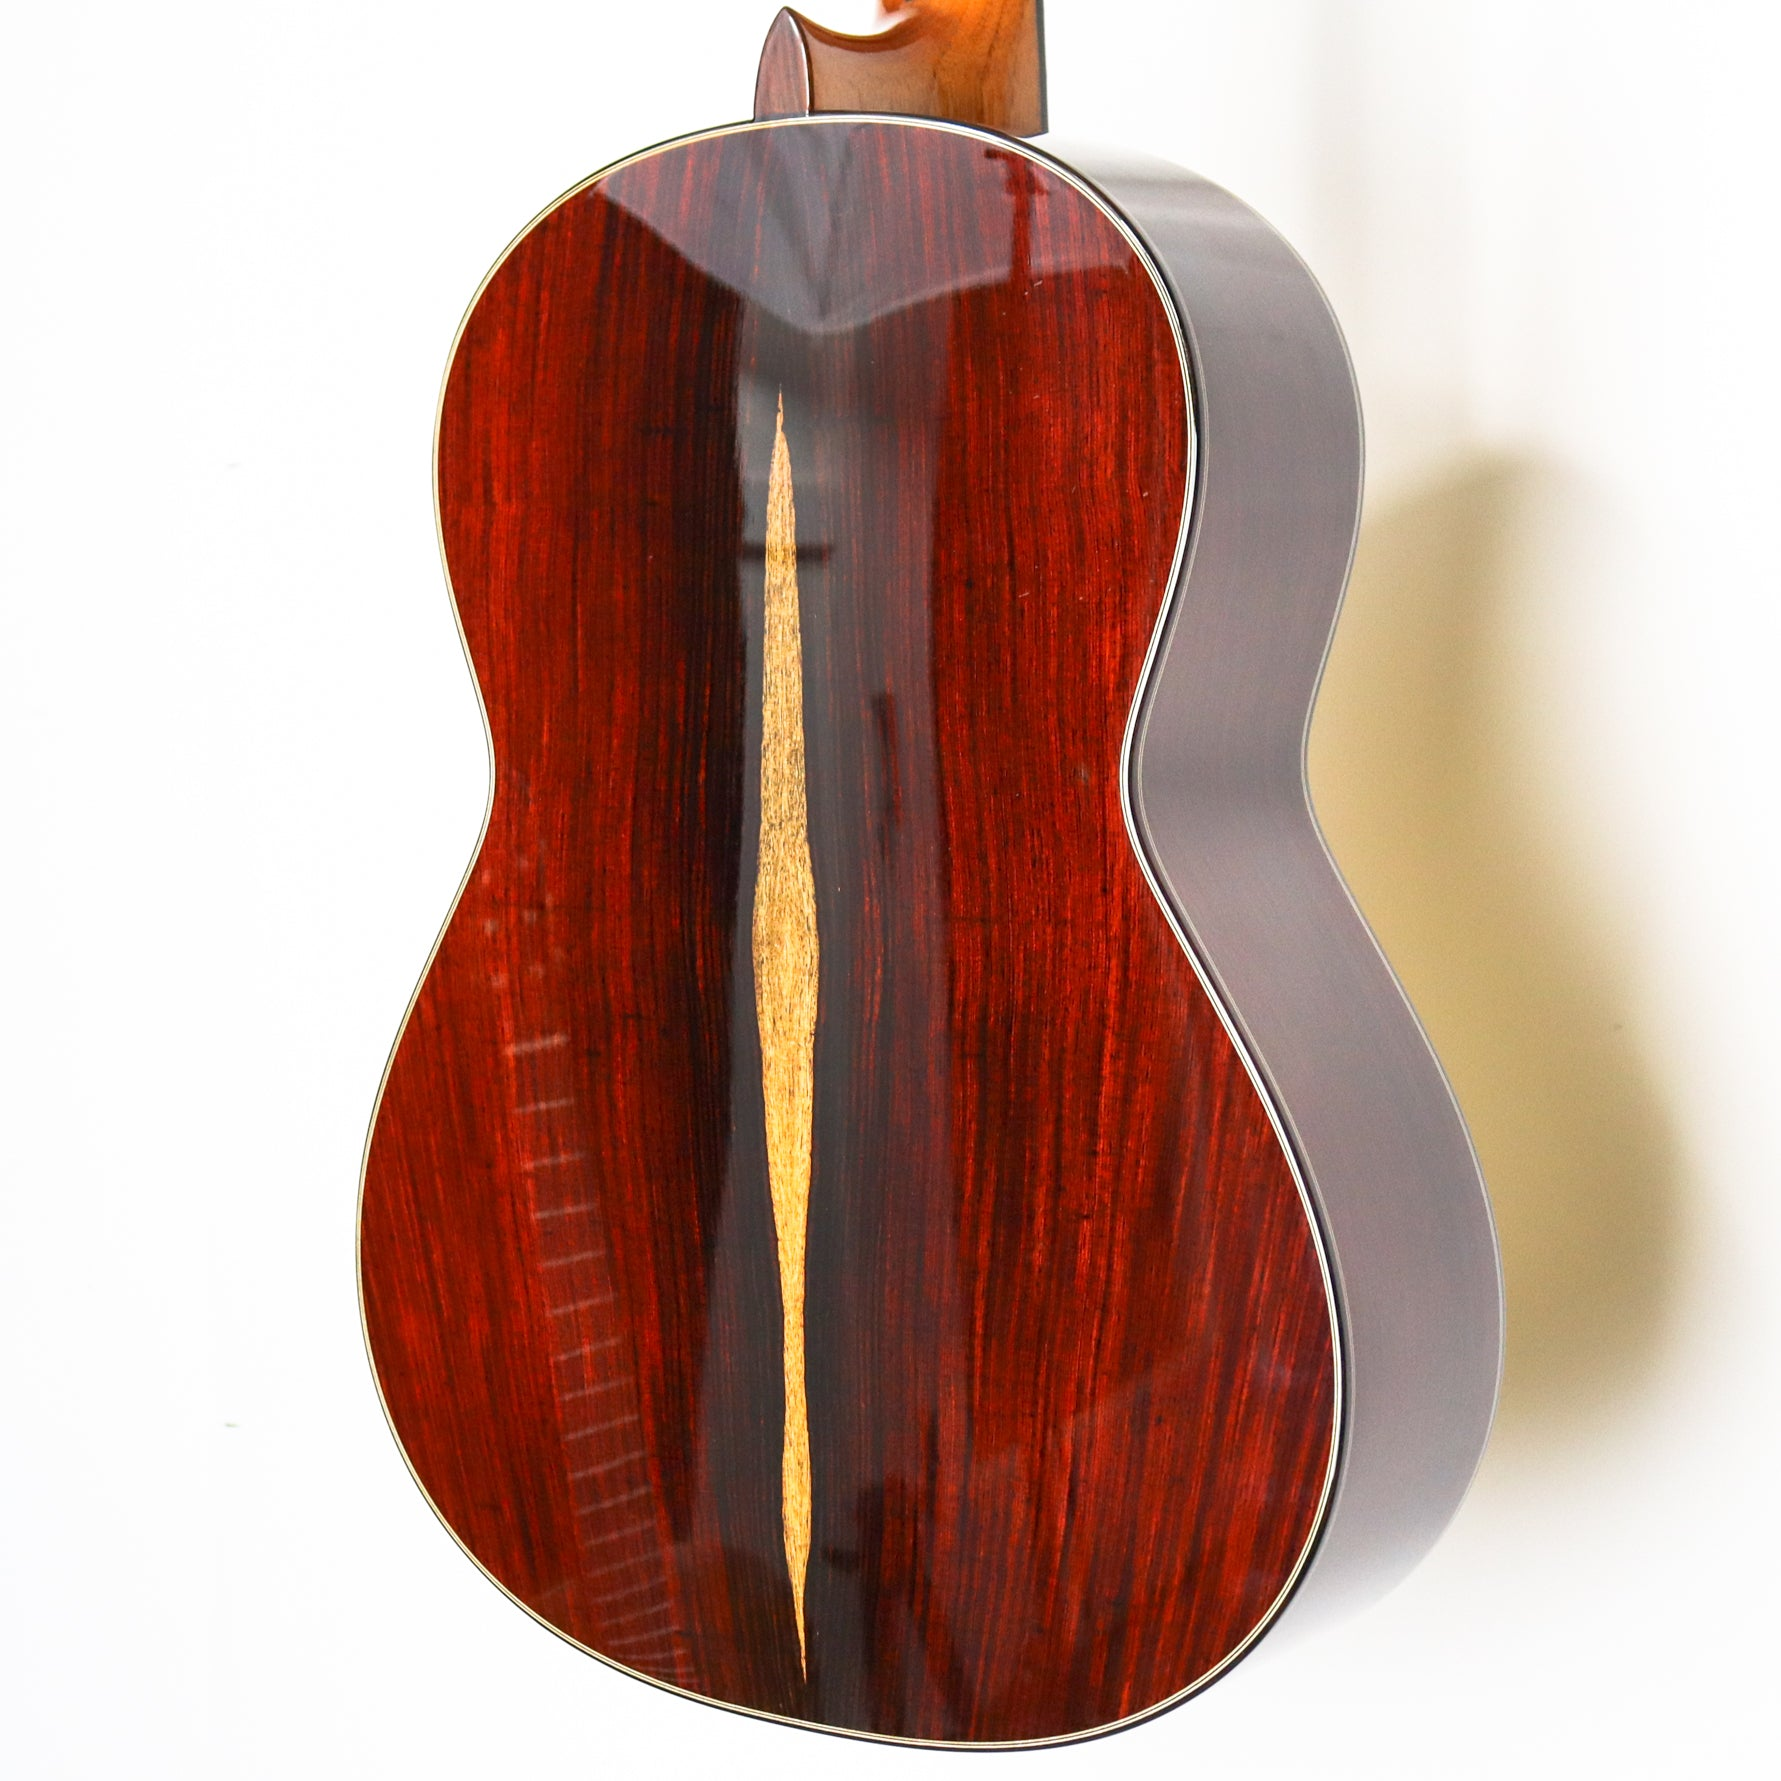 Hanika 58CF Classical Guitar Spruce Top & Cocobolo Back & Sides w/Molded Case